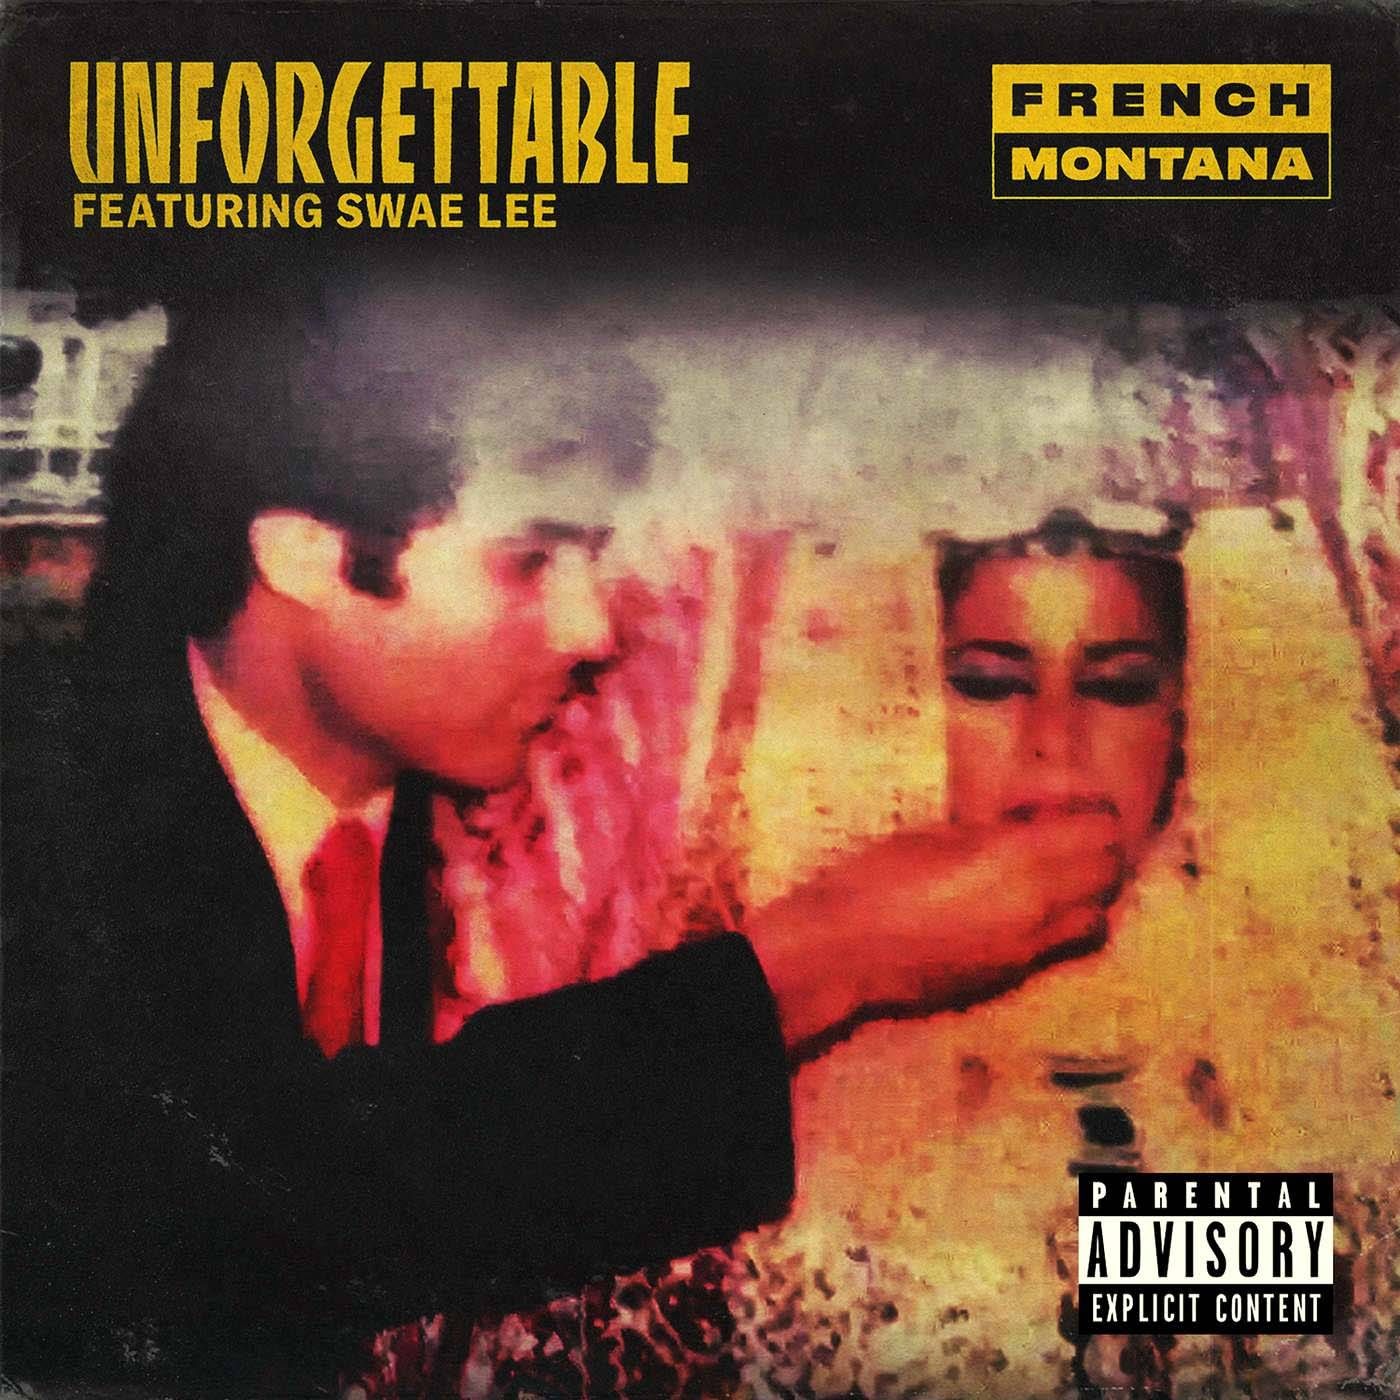 FRENCH MONTANA FT. SWAE LEE - UNFORGETTABLE - (Photo: Bad Boys Records)